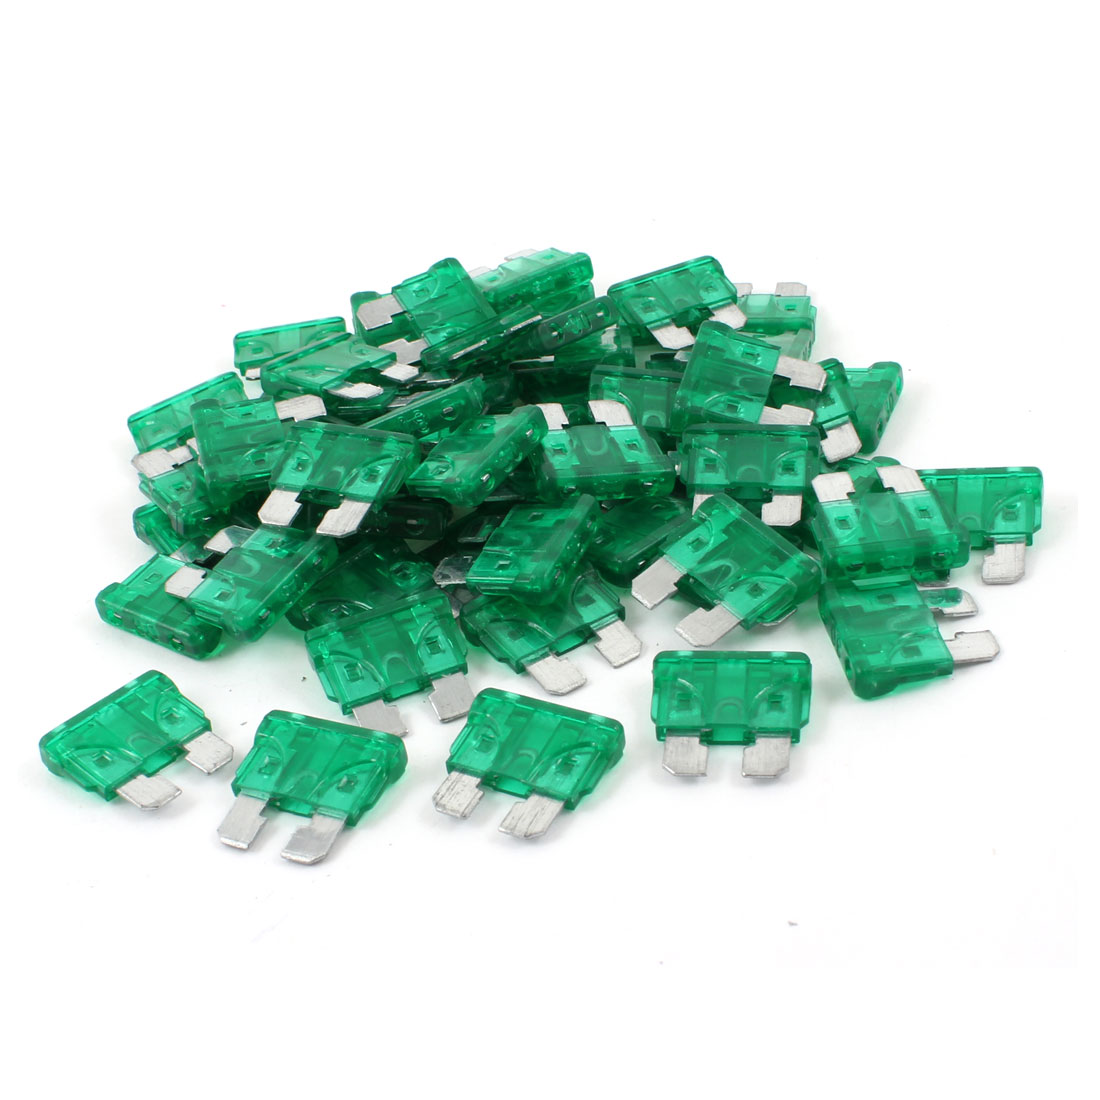 60pcs Clear Green 30A Mini Blade Fuses Set for Vehicle Car Auto